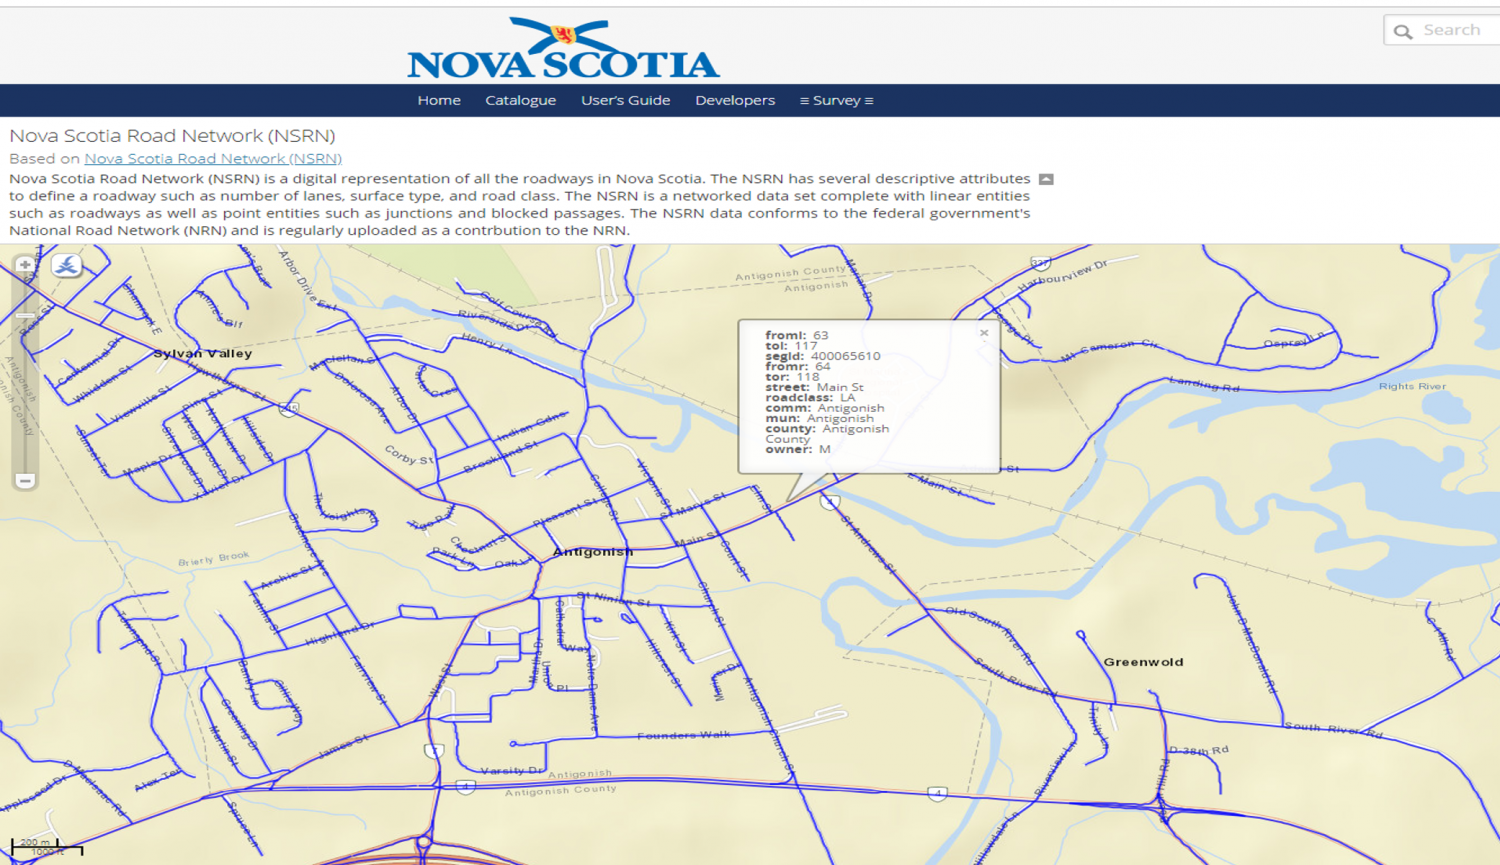 Sources of Nova Scotia Geospatial Data - Canadian Geographic Resources